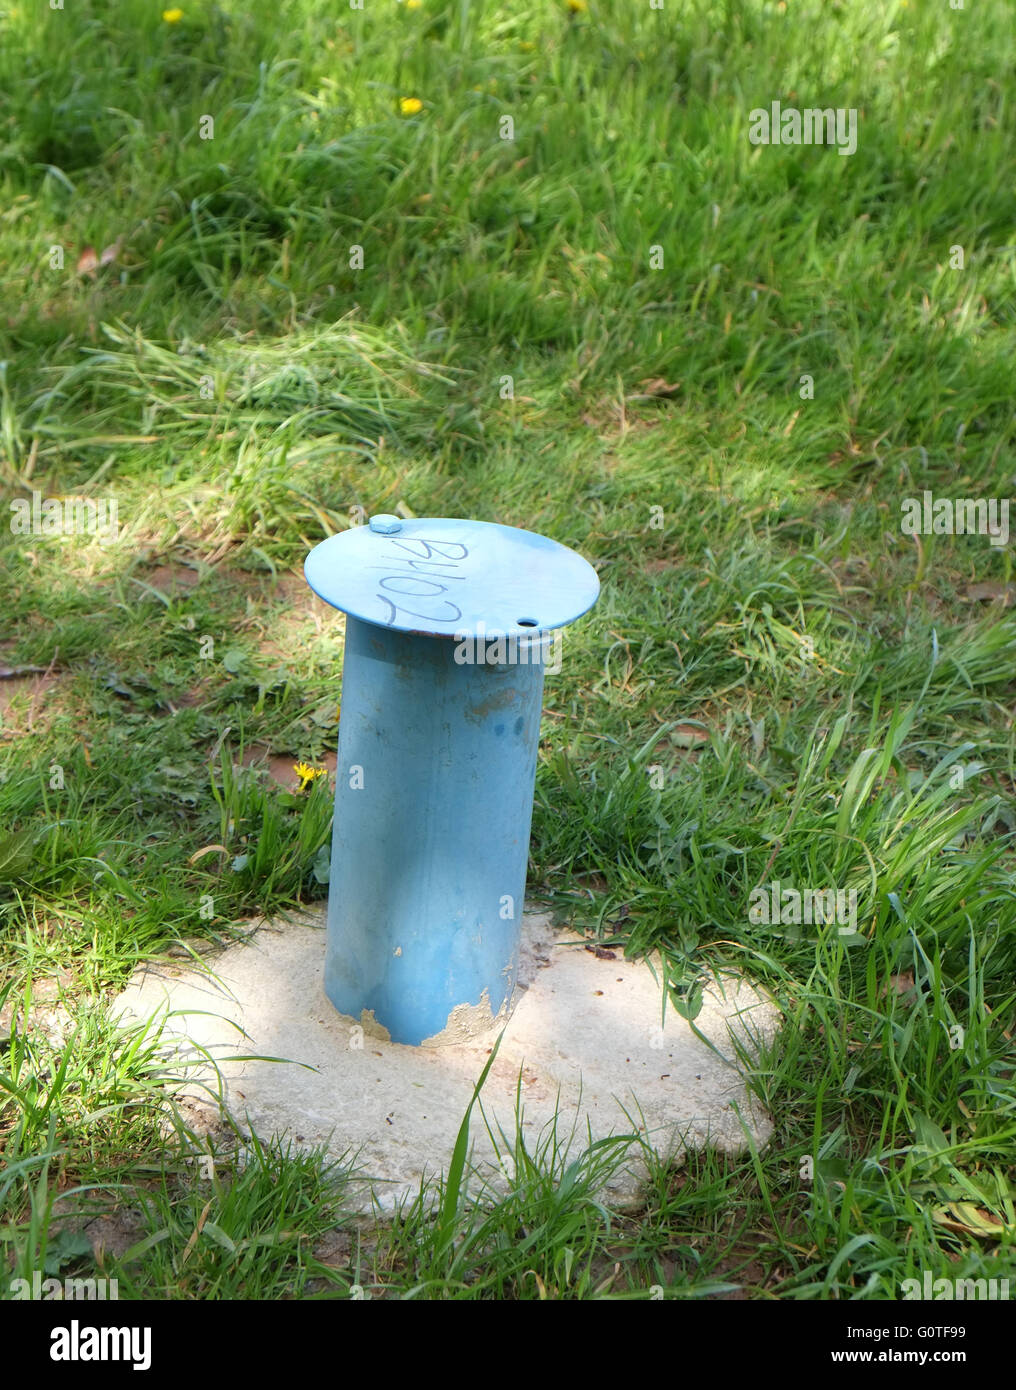 Bore hole survey point or location, April 2016 - Stock Image